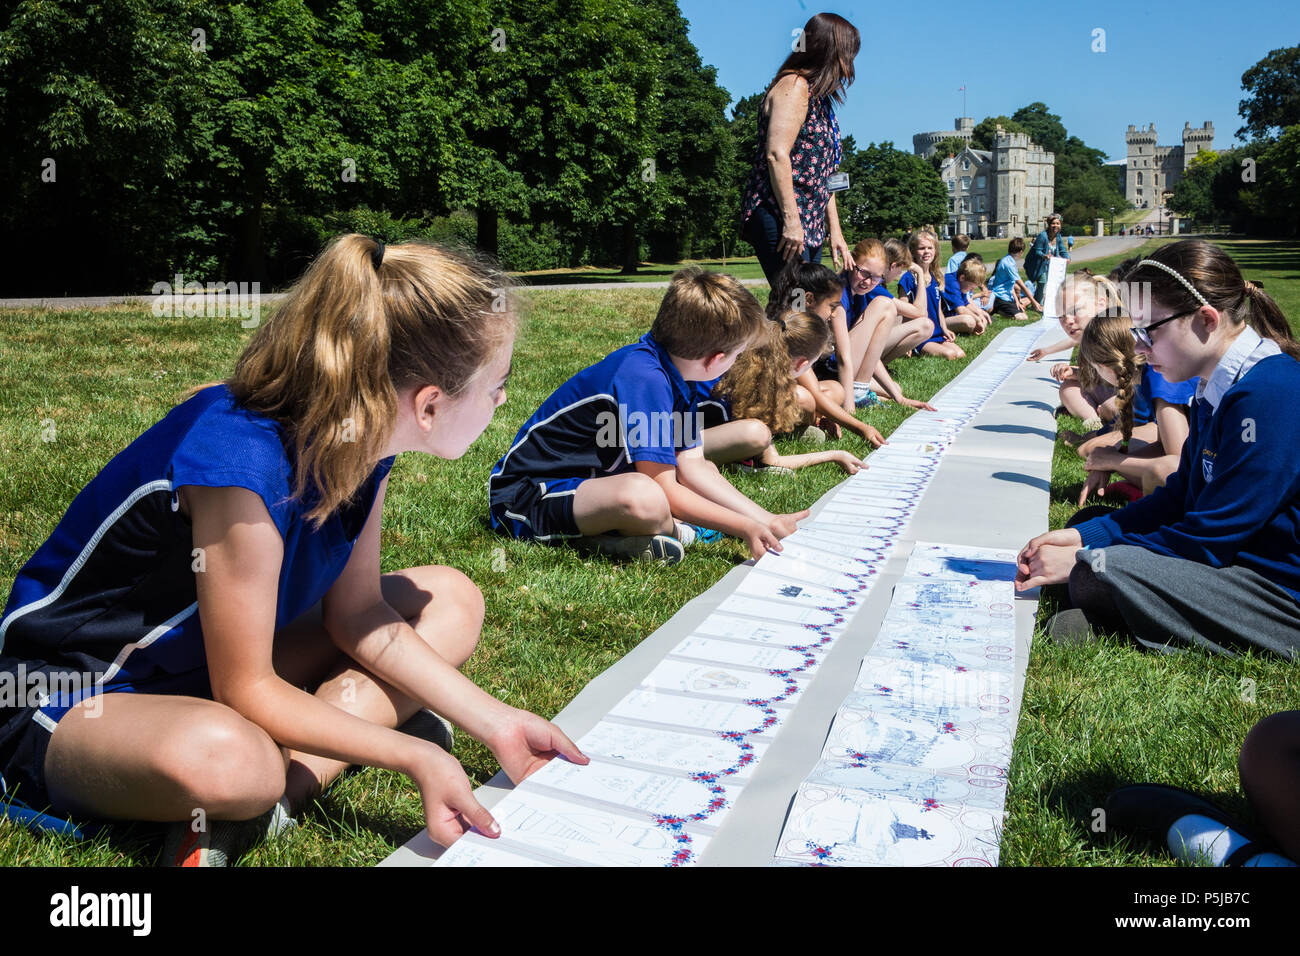 Windsor, UK. 27th June 2018. Local schoolchildren sit by the Long Walk in Windsor Great Park in front of Windsor Castle alongside a card prepared as a gift for the royal wedding of the Duke and Duchess of Sussex in a Guinness World Records™ record attempt for the title of the Longest Concertina Folded card by the Busy Buttons Design Centre CIC and a wide cross-section of the local community. The card has been signed by 4797 people and has an as yet unconfirmed length of 1367 metres. Credit: Mark Kerrison/Alamy Live News - Stock Image